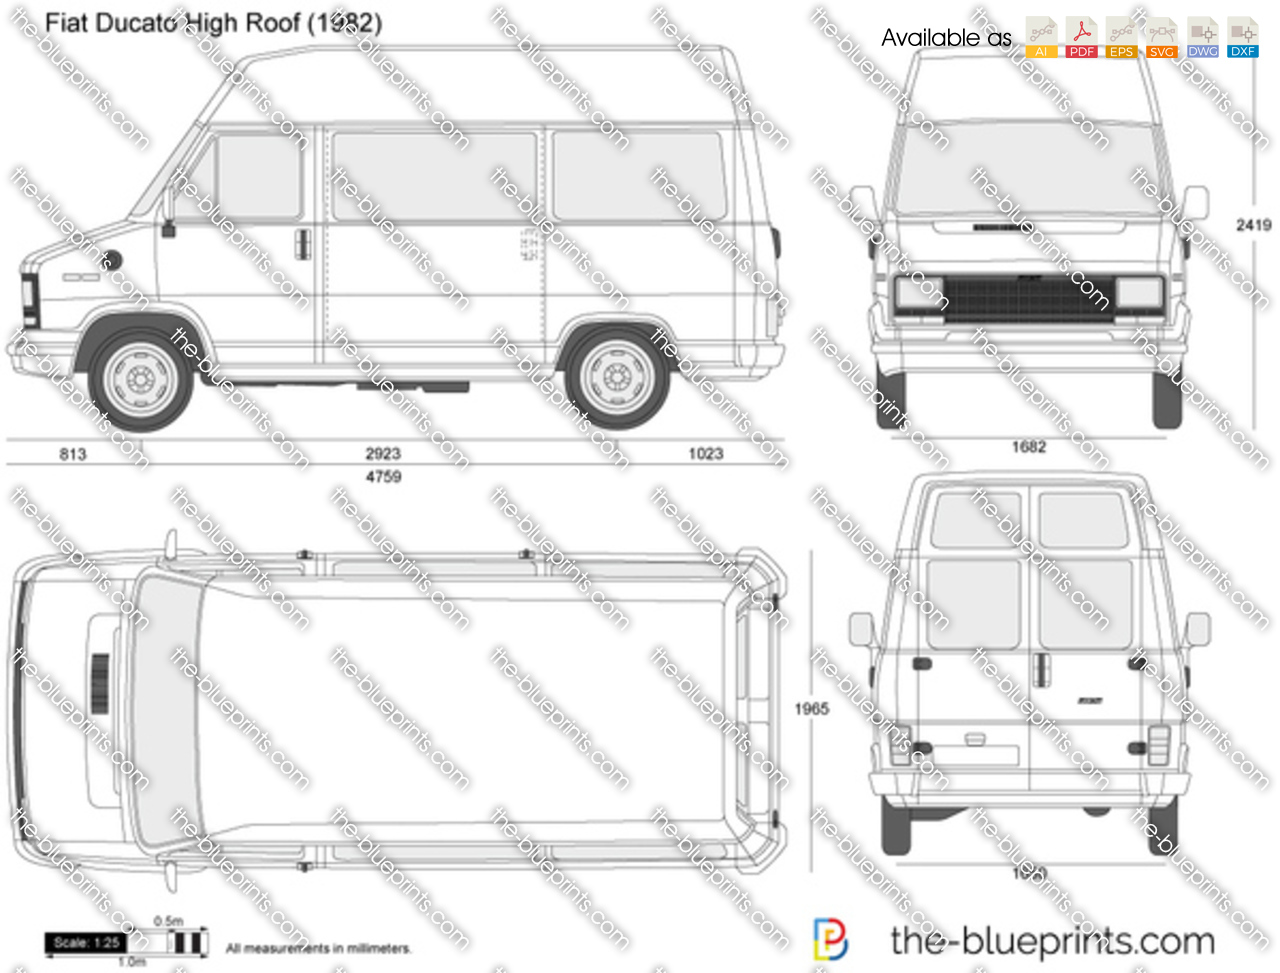 Fiat Ducato High Roof Vector Drawing